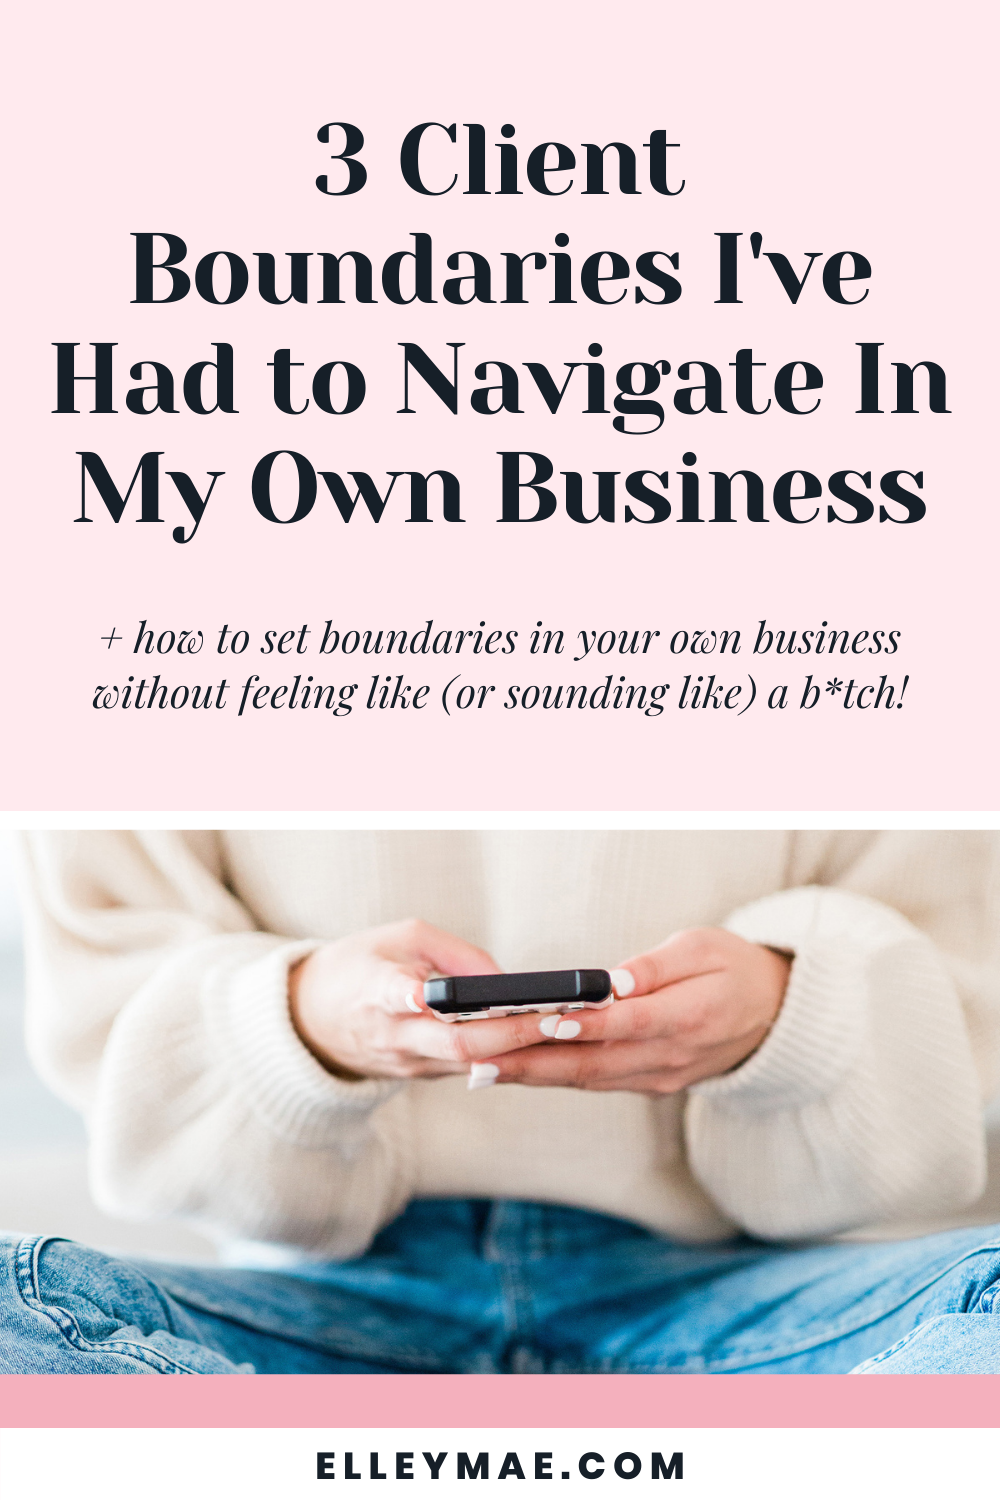 086. Client Boundaries I've Had to Navigate In My Own Business